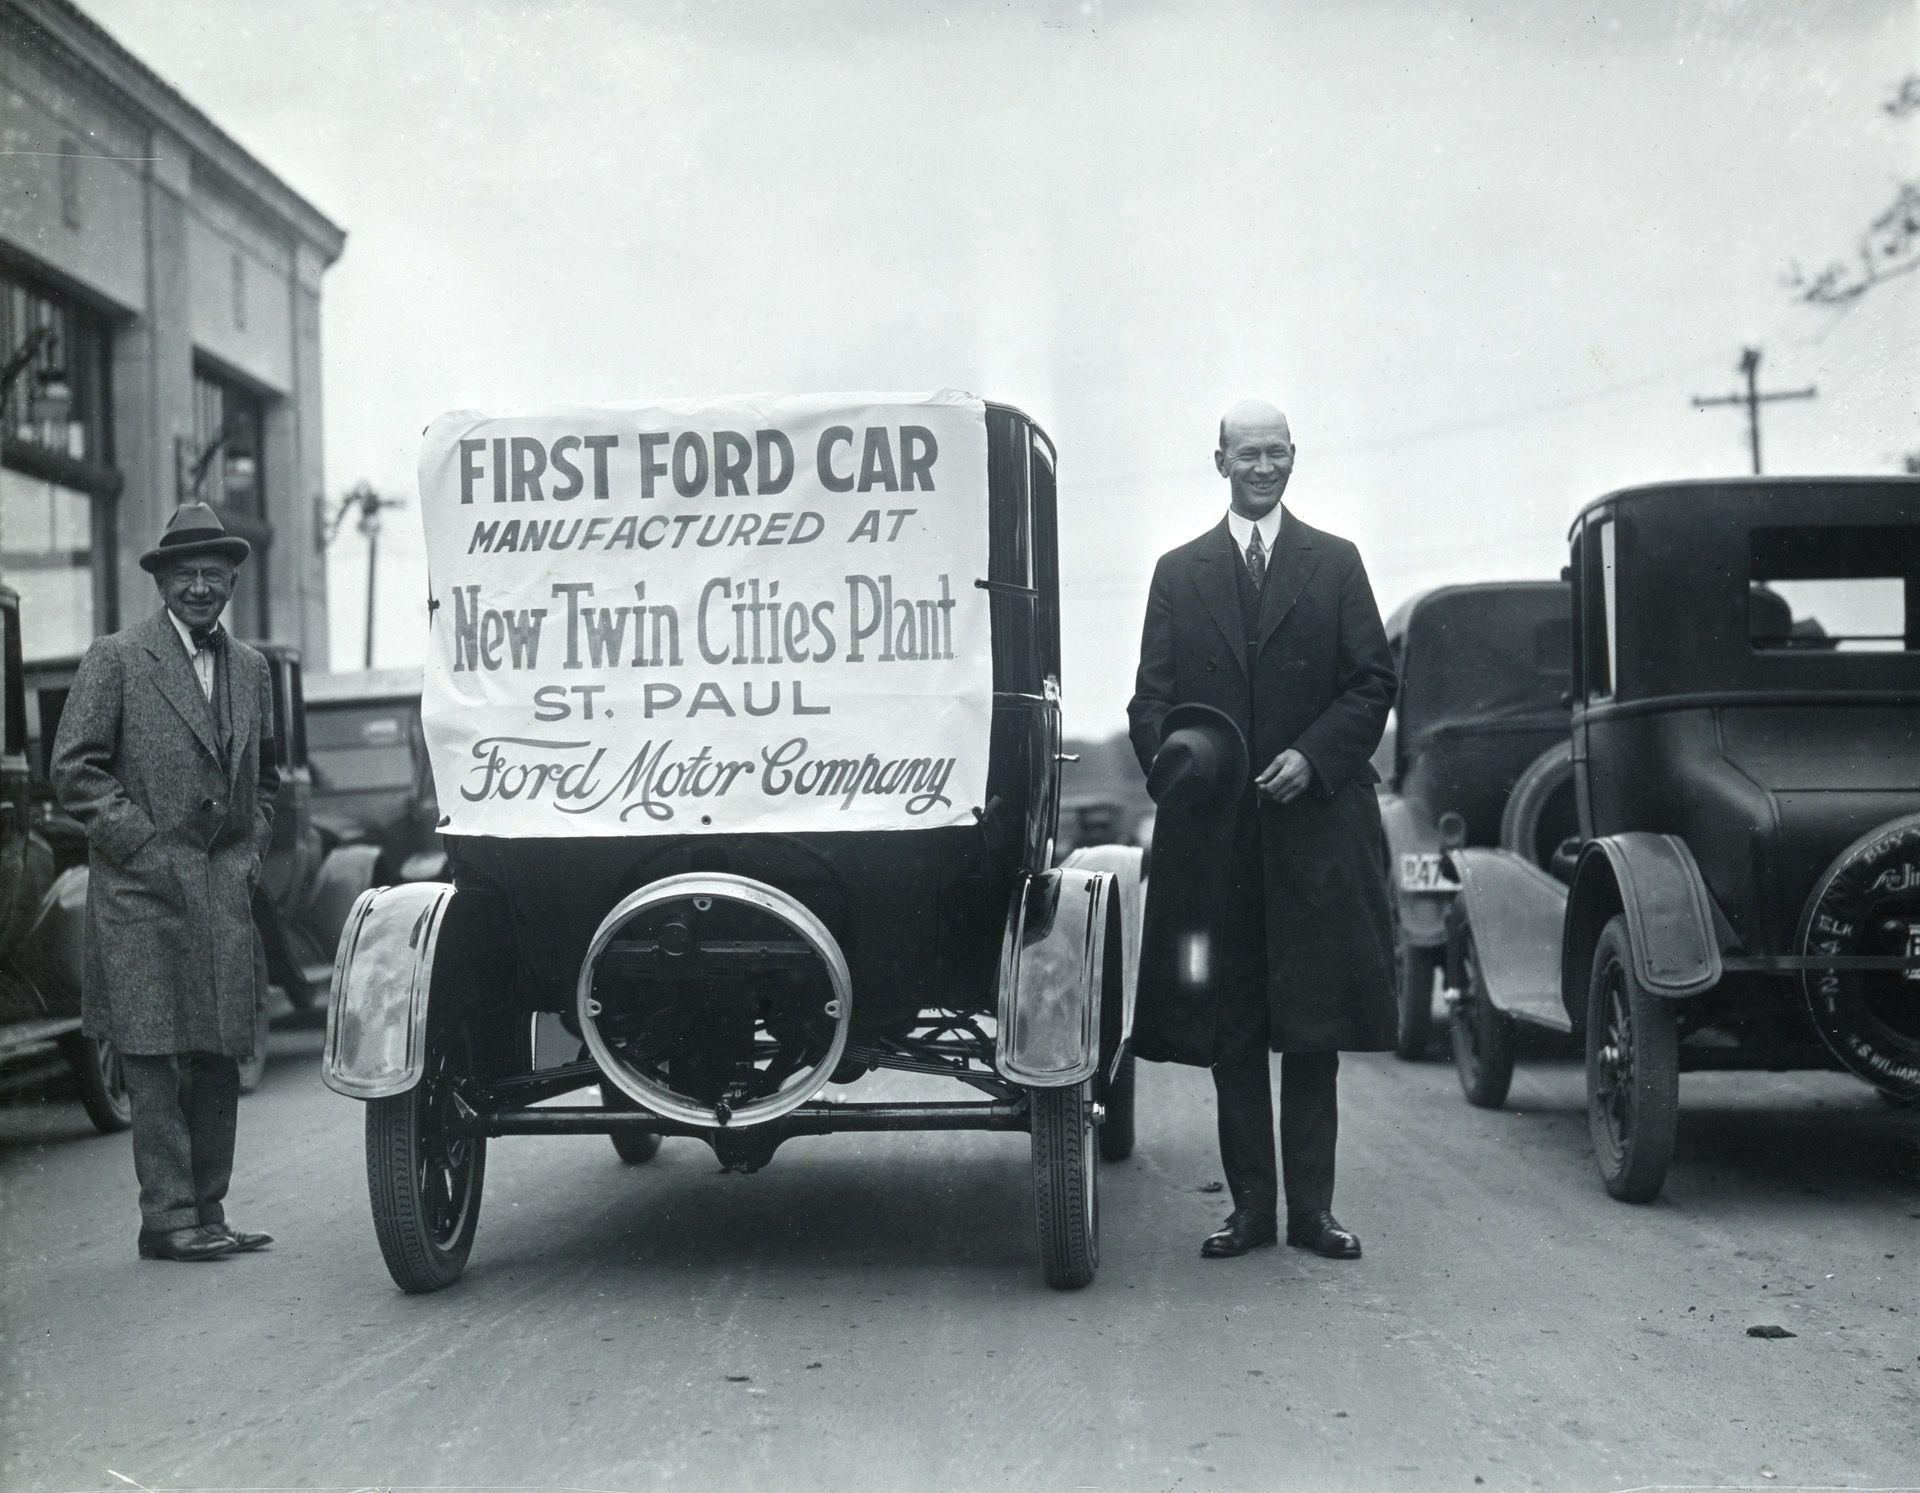 The first Model T rolled off the assembly line on May 4, 1925. The plant's opening generated tremendous excitement within the business community, whose leaders expected it to generate a big boost for the local economy. Courtesy Minnesota Historical Society